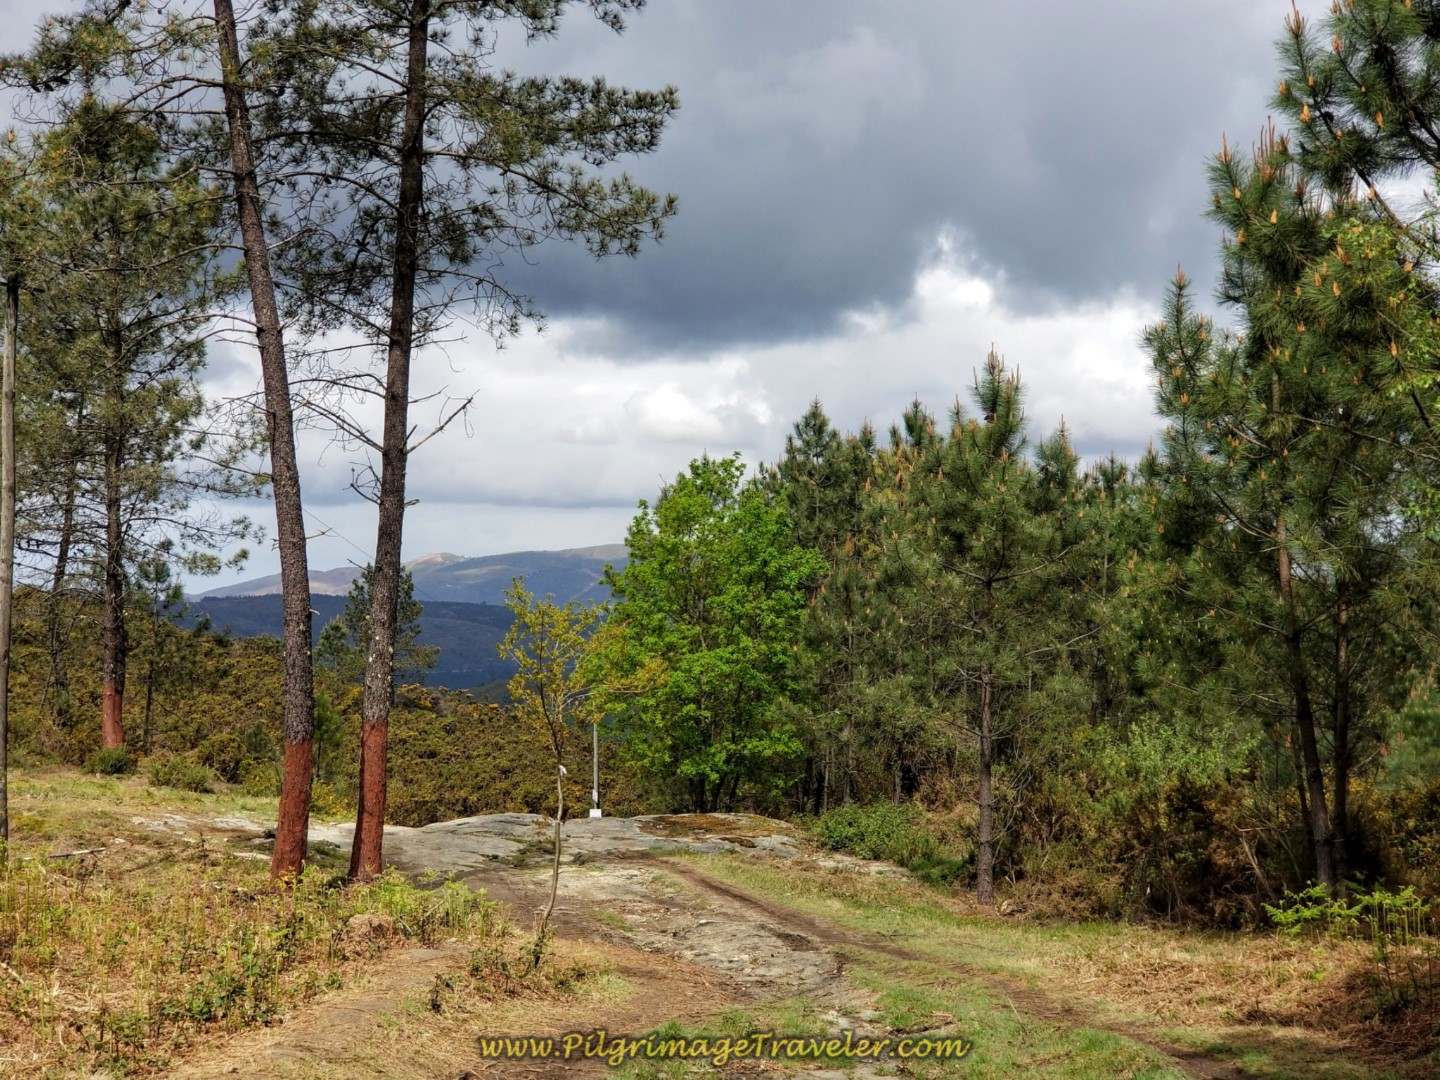 Weather Threatens on the Way Down the Mountain on day eighteen on the Central Route of the Portuguese Camino